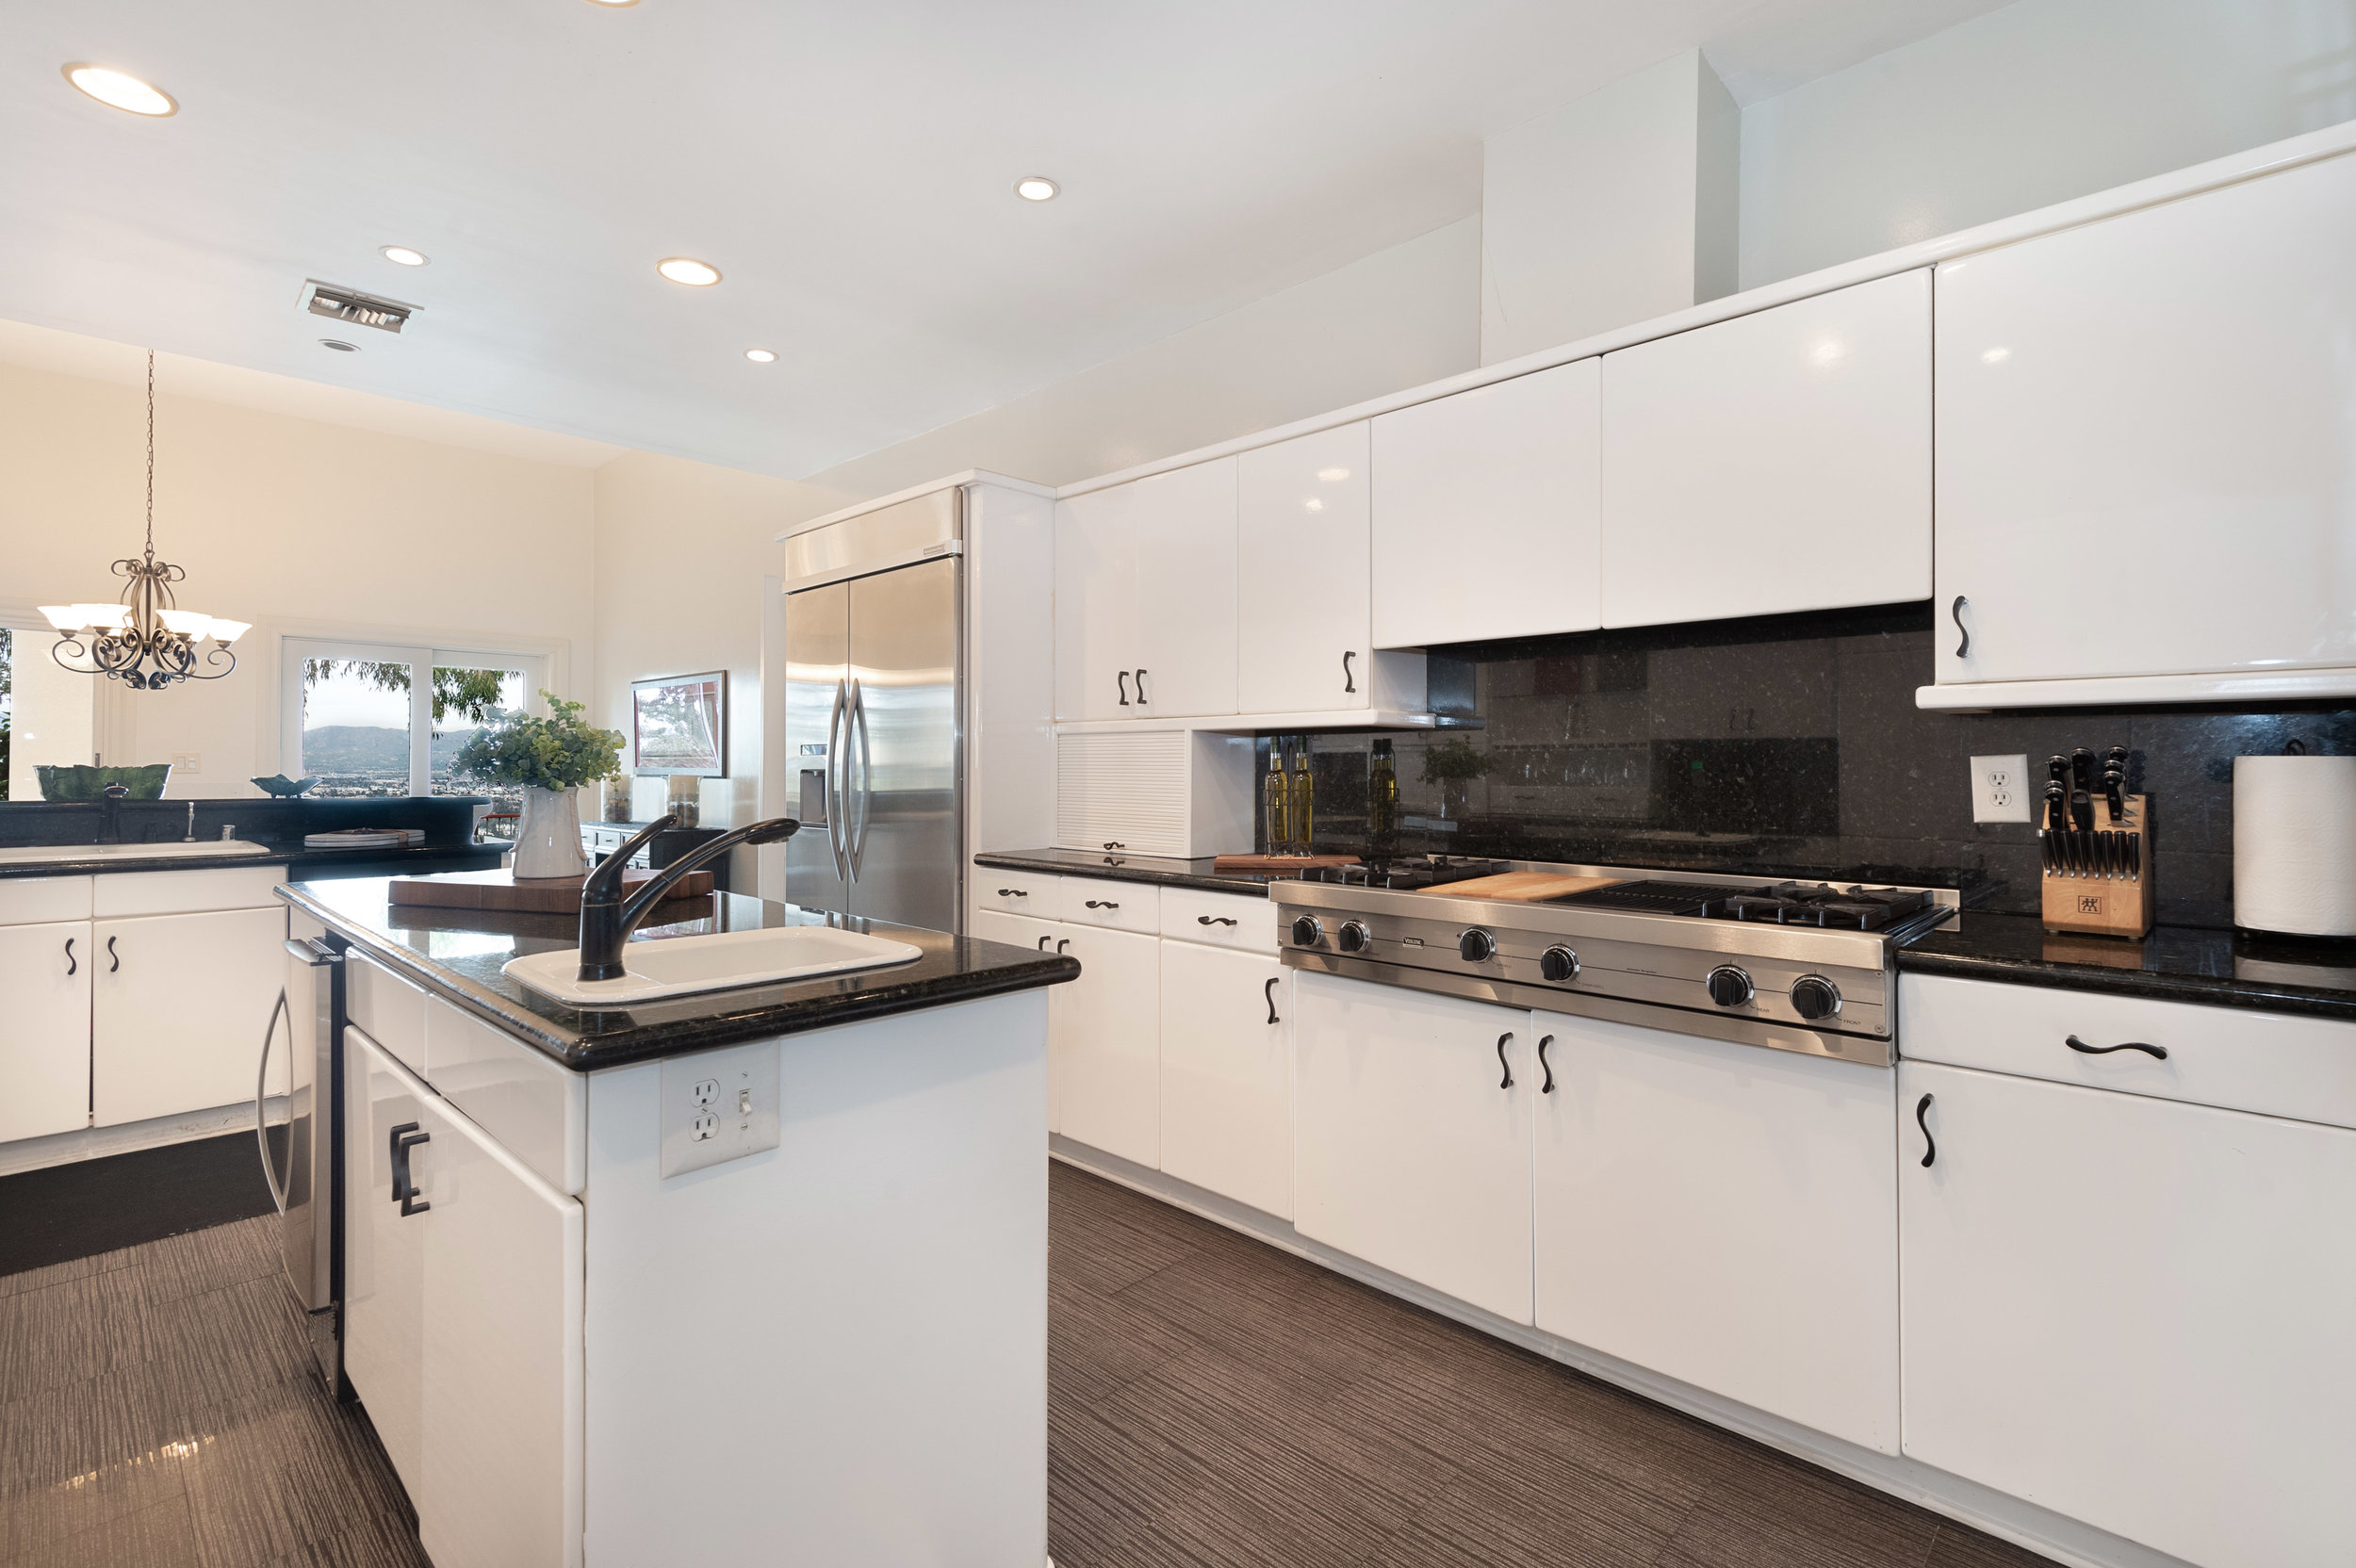 007 Kitchen. 12027 Talus Place Beverly Hills 90210 For Sale Lease The Malibu Life Team Luxury Real Estate.jpg